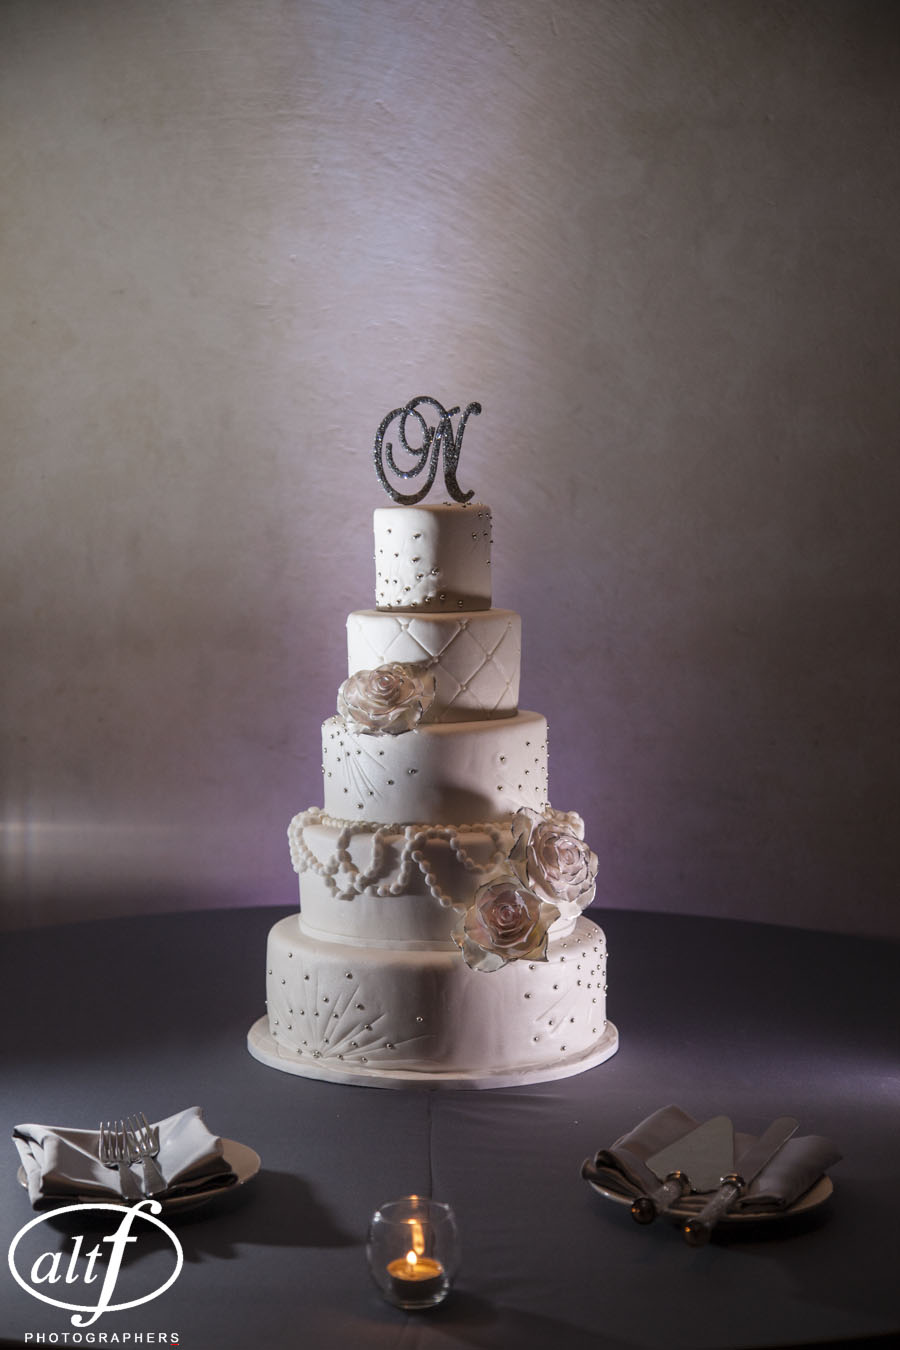 The Wedding Cake with Roses & Pearls